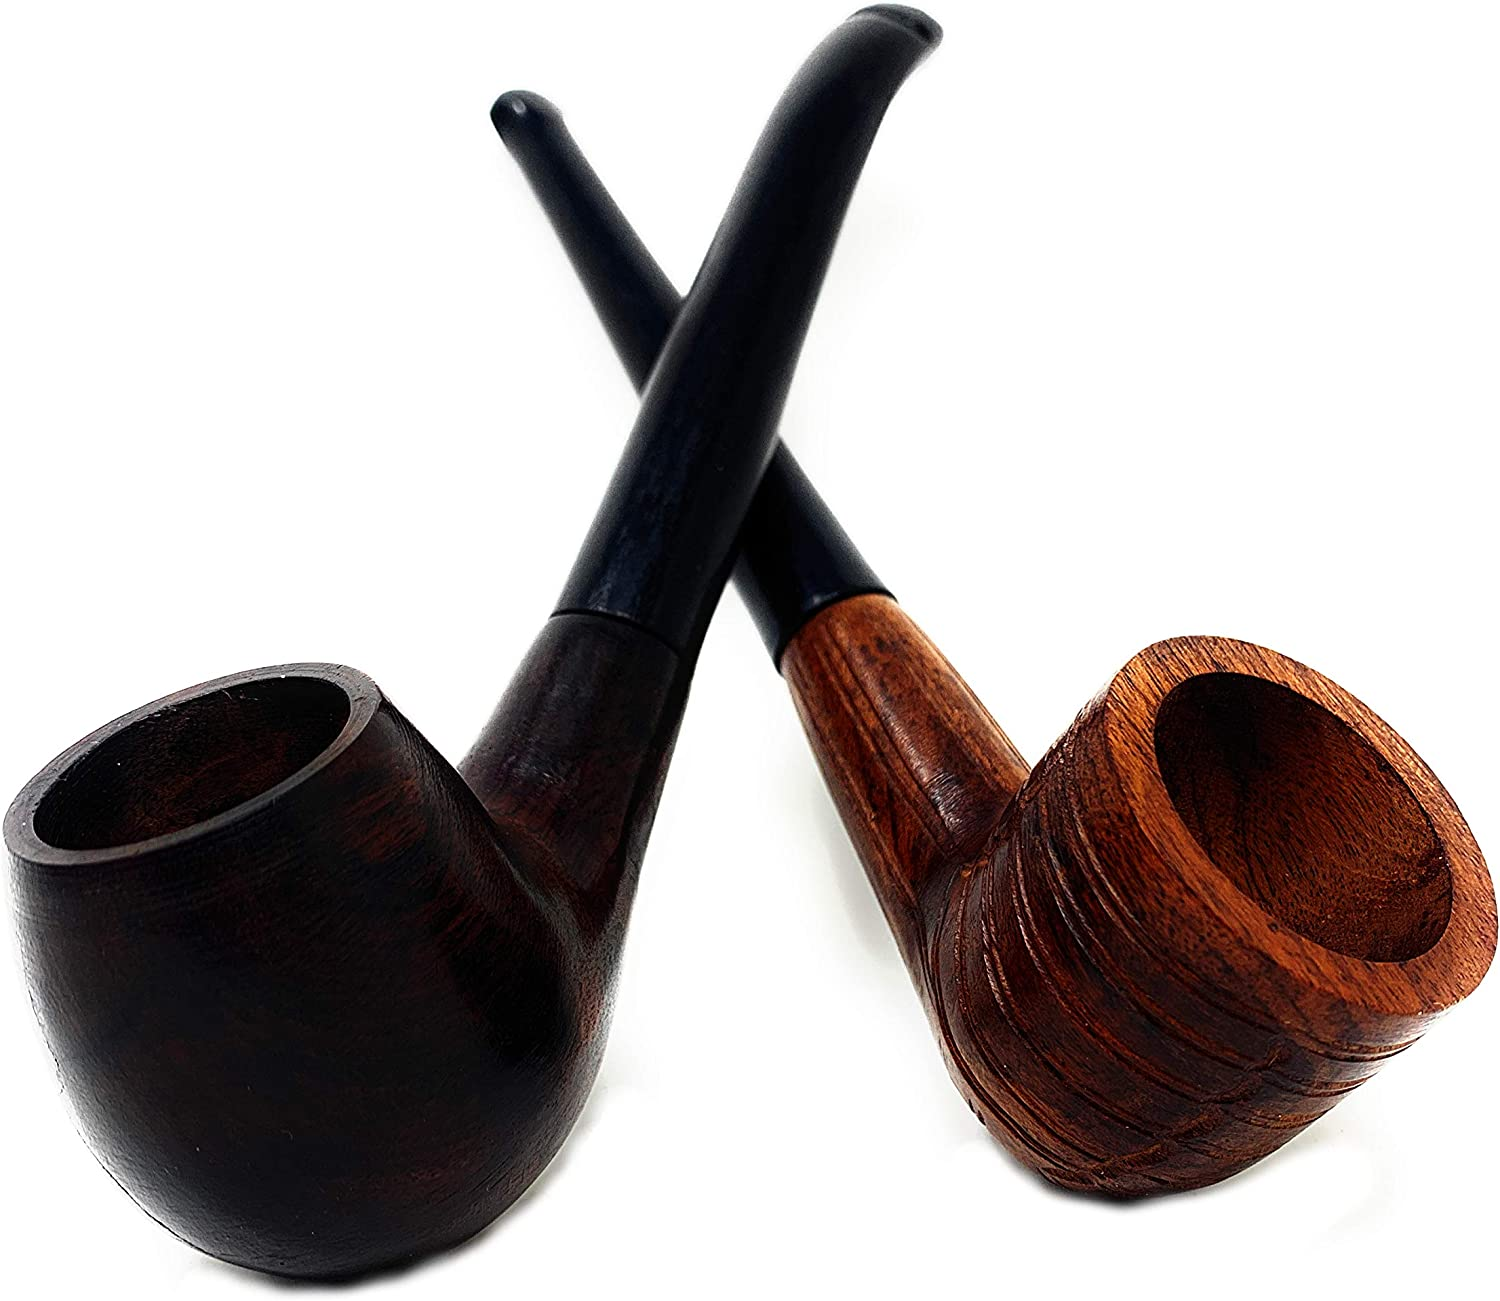 Set of 2 Handcrafted His & her Ebony Wood Tobacco Pipe Set 6 inch - Billiard Pipe and Apple Shape Viking Bent Pipe Set